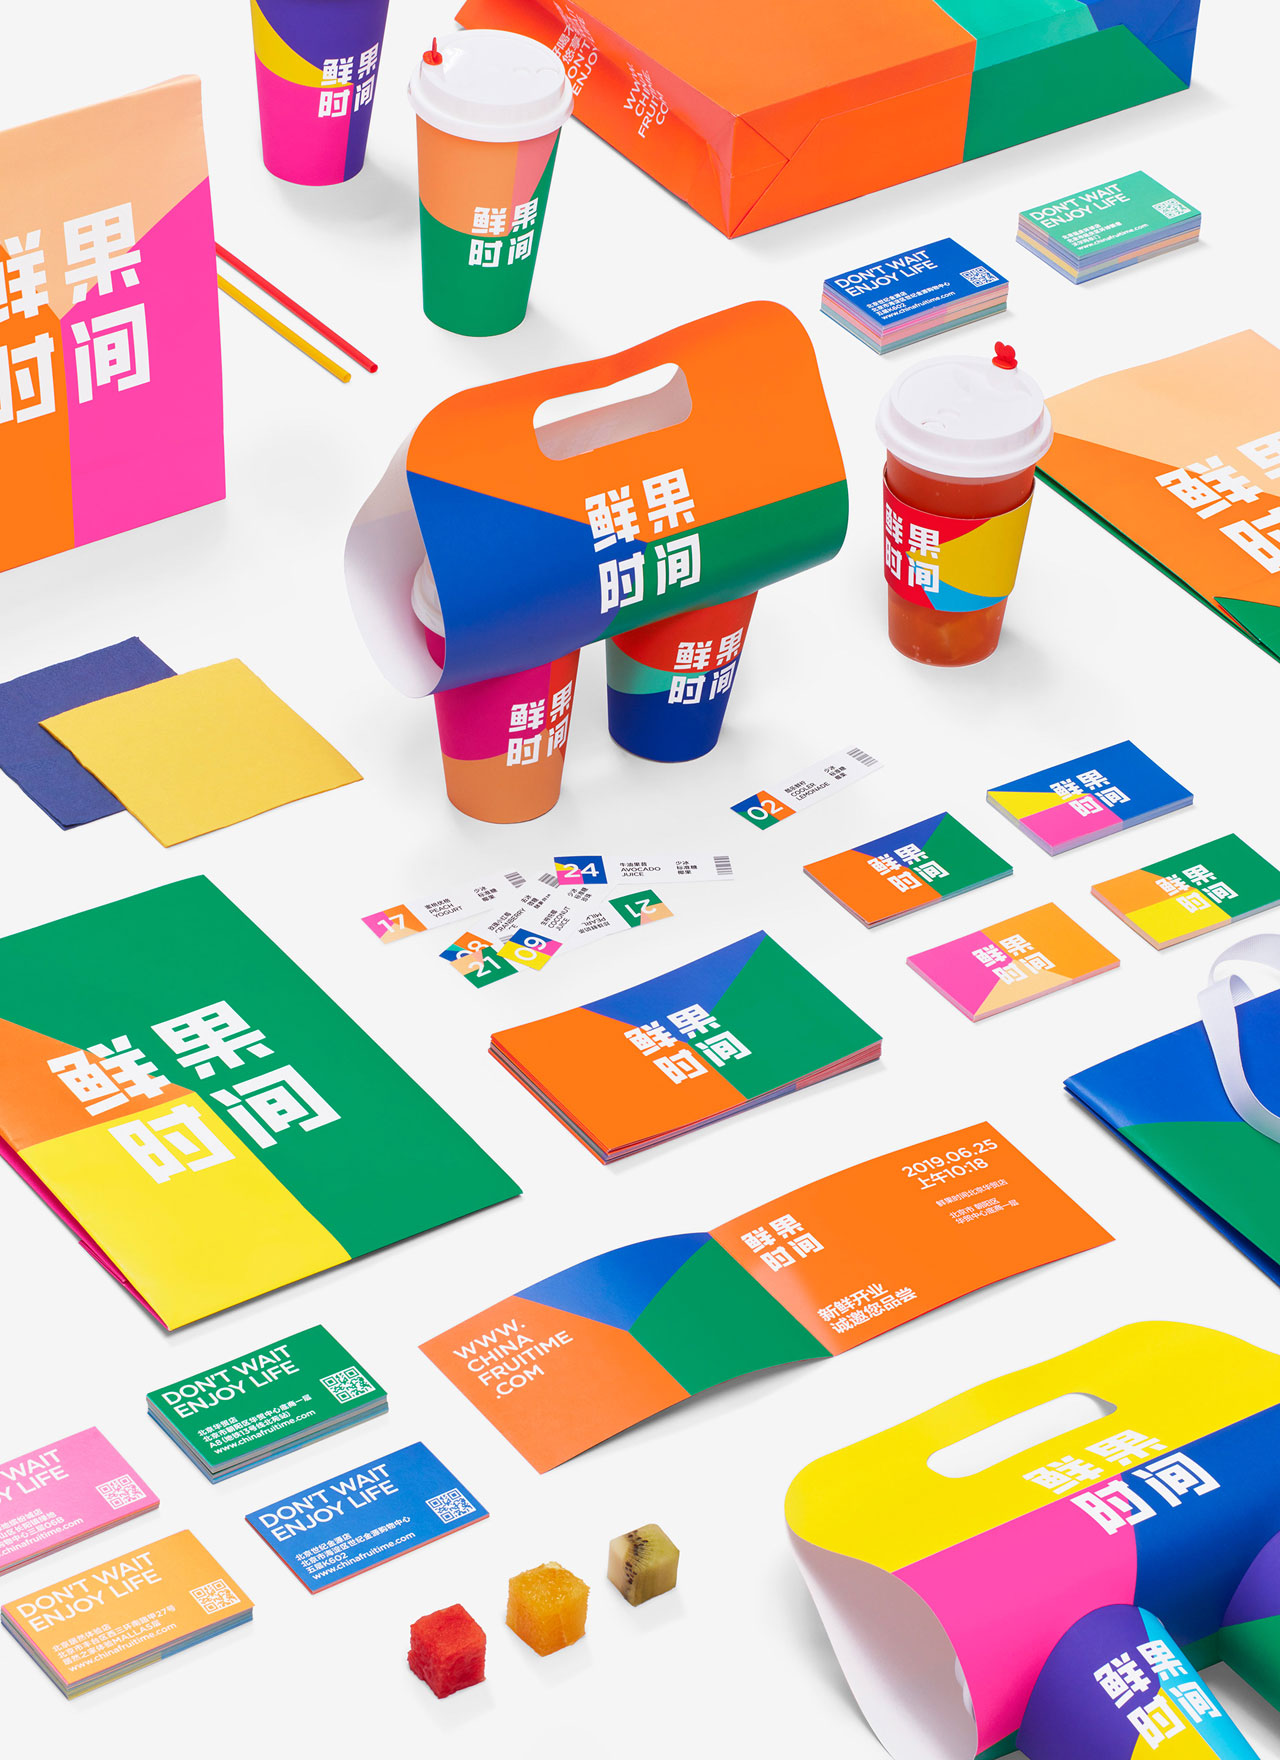 Graphic design, branding, and packaging by Nod Young for It's Time To.